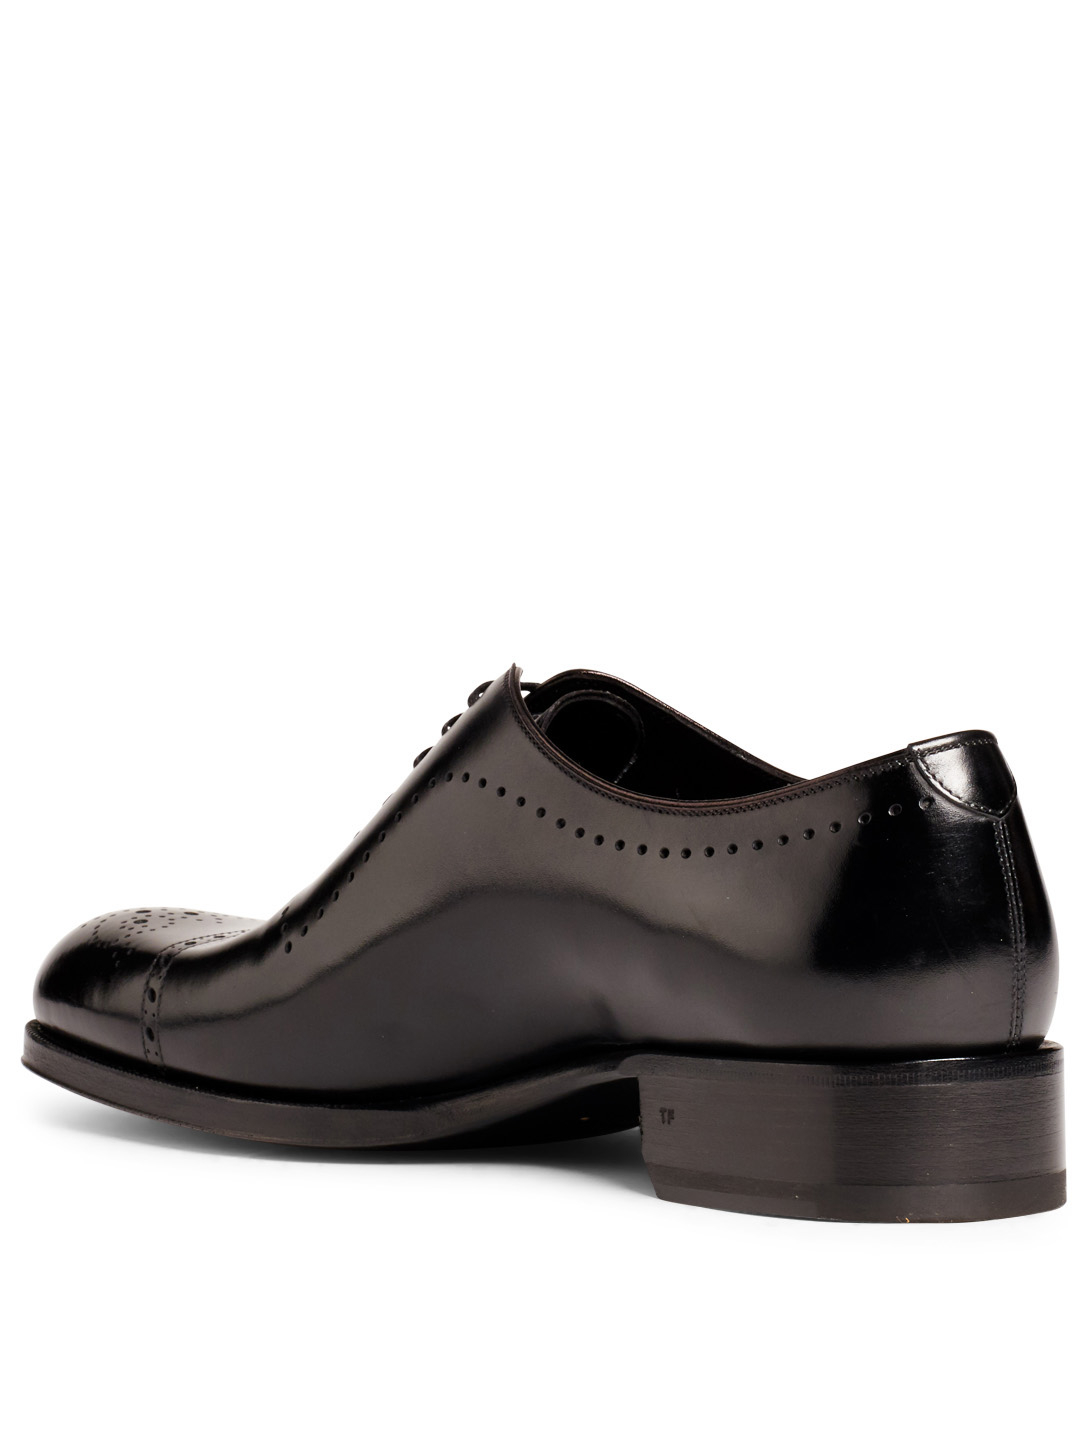 TOM FORD Edgar Leather Brogues Men's Black